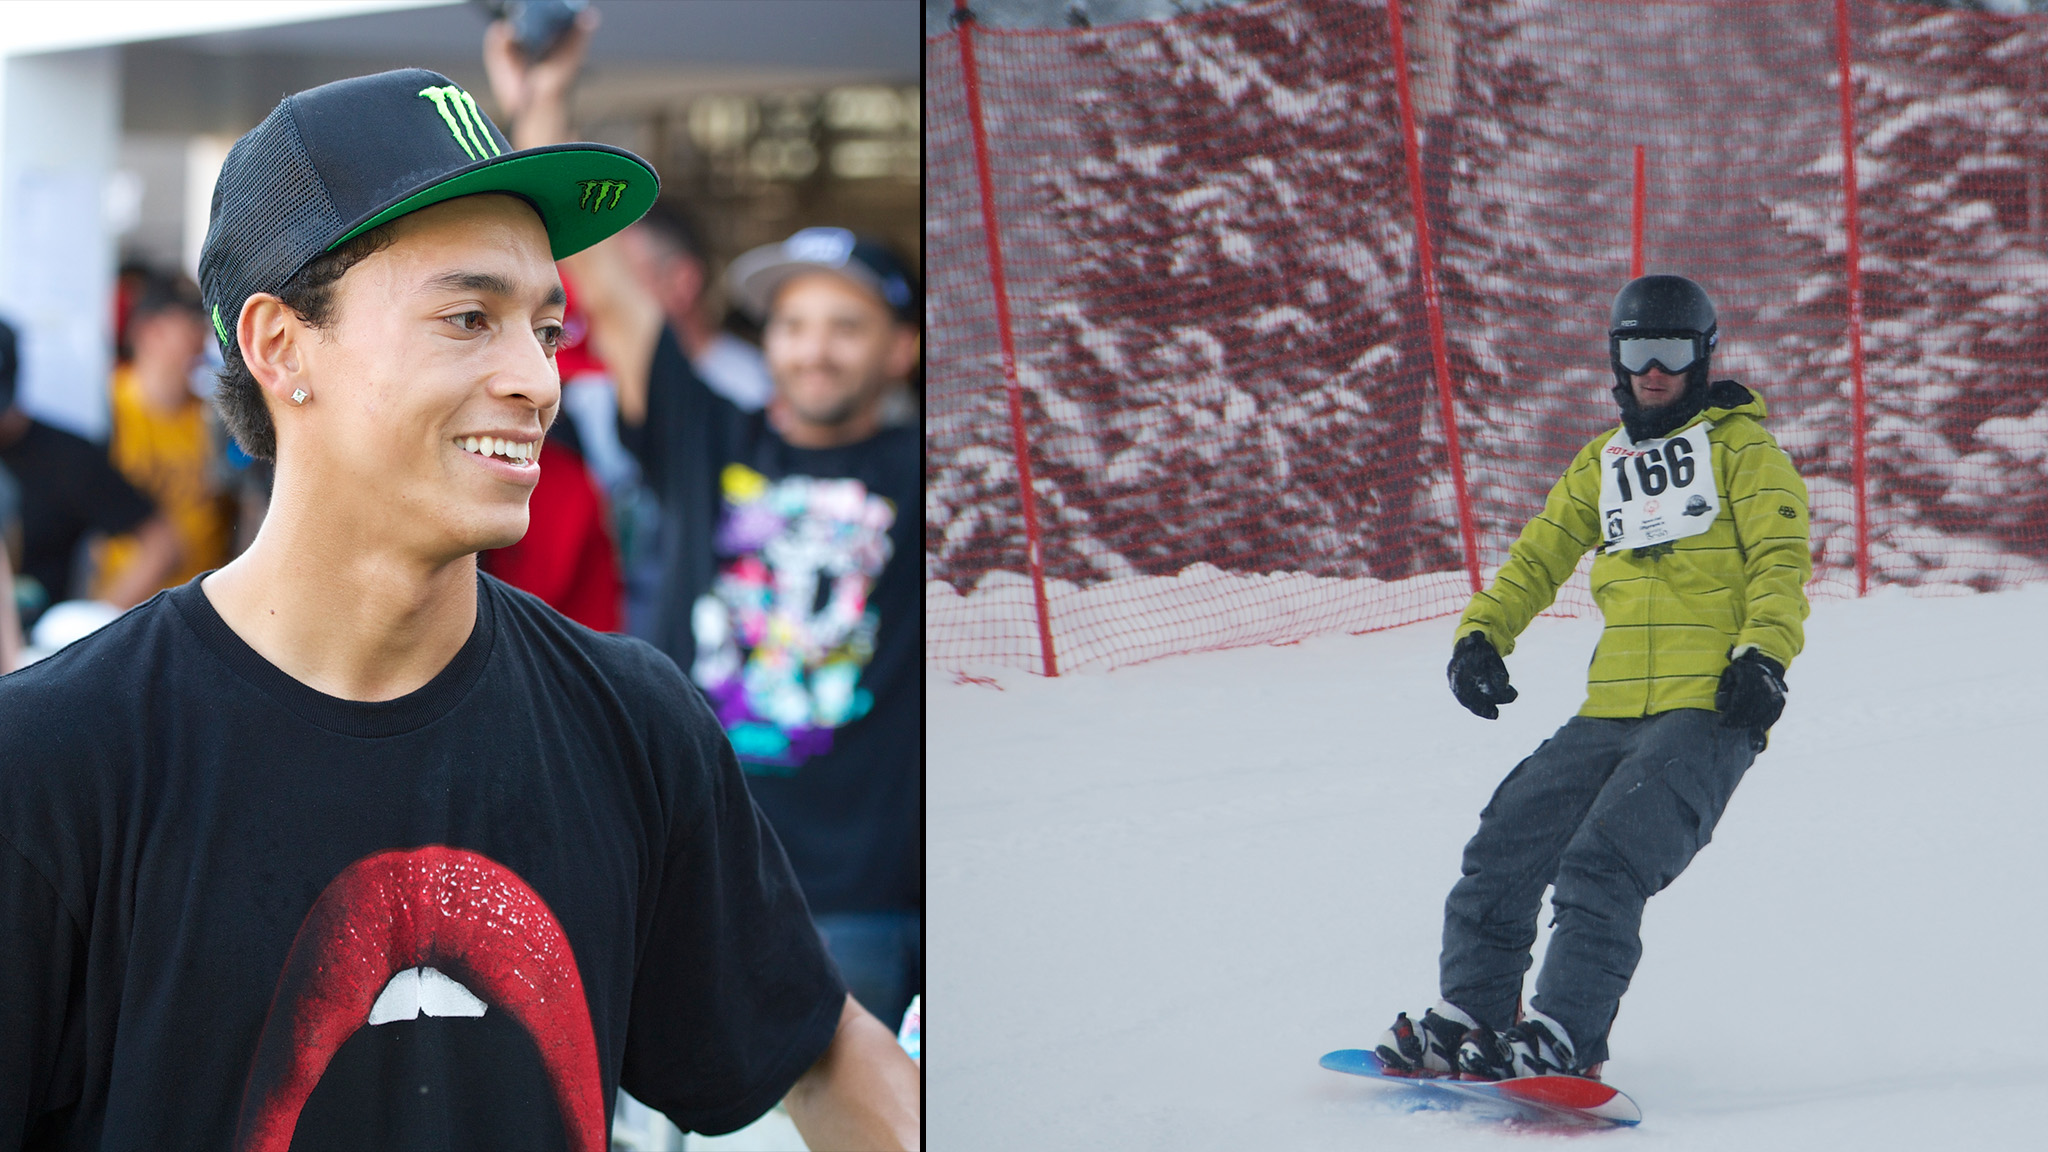 Nyjah Huston and Brian Doolan